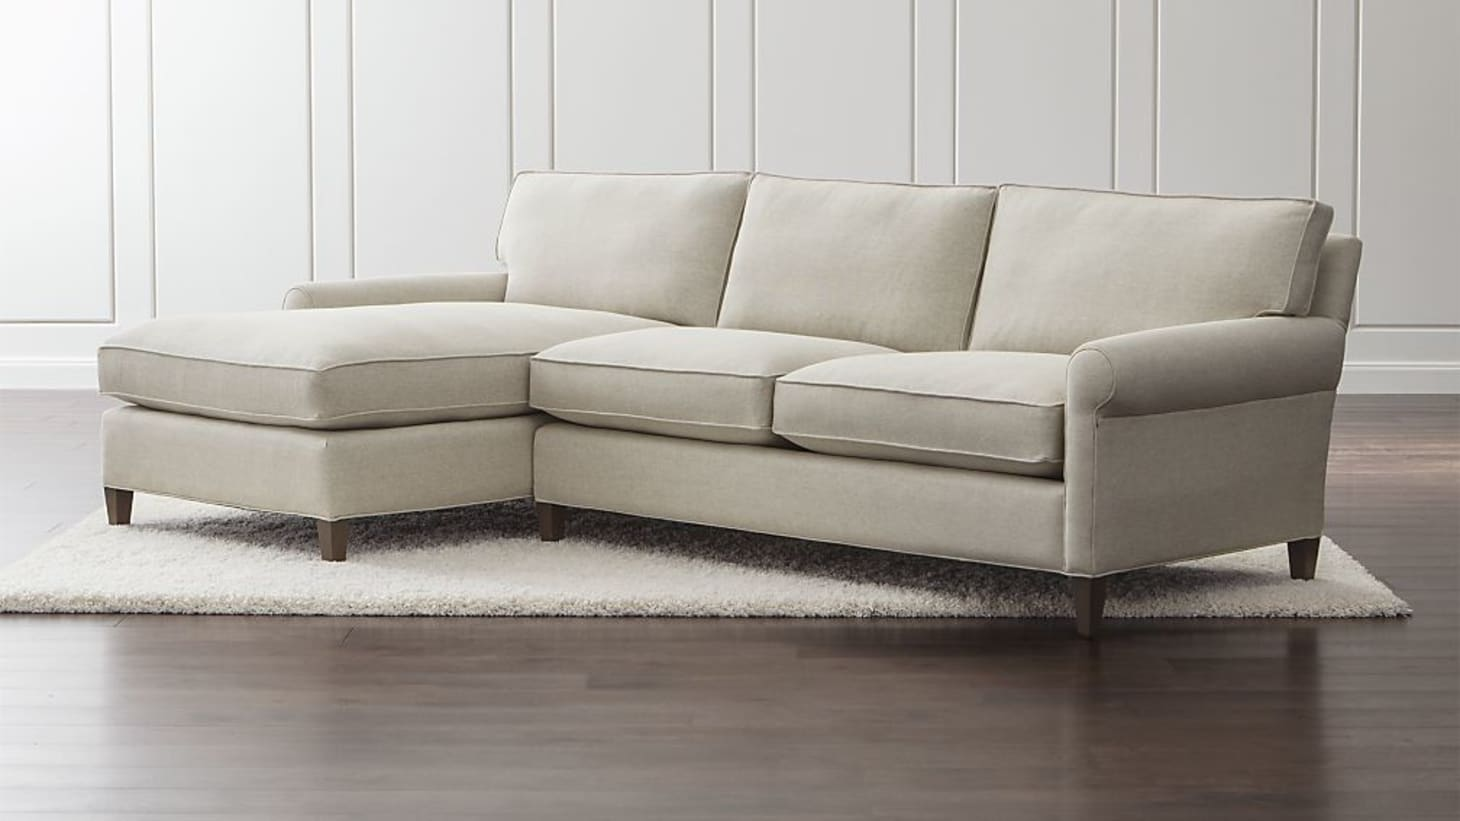 Fantastic Expandable Modular Best Sectional Sofas Apartment Therapy Camellatalisay Diy Chair Ideas Camellatalisaycom